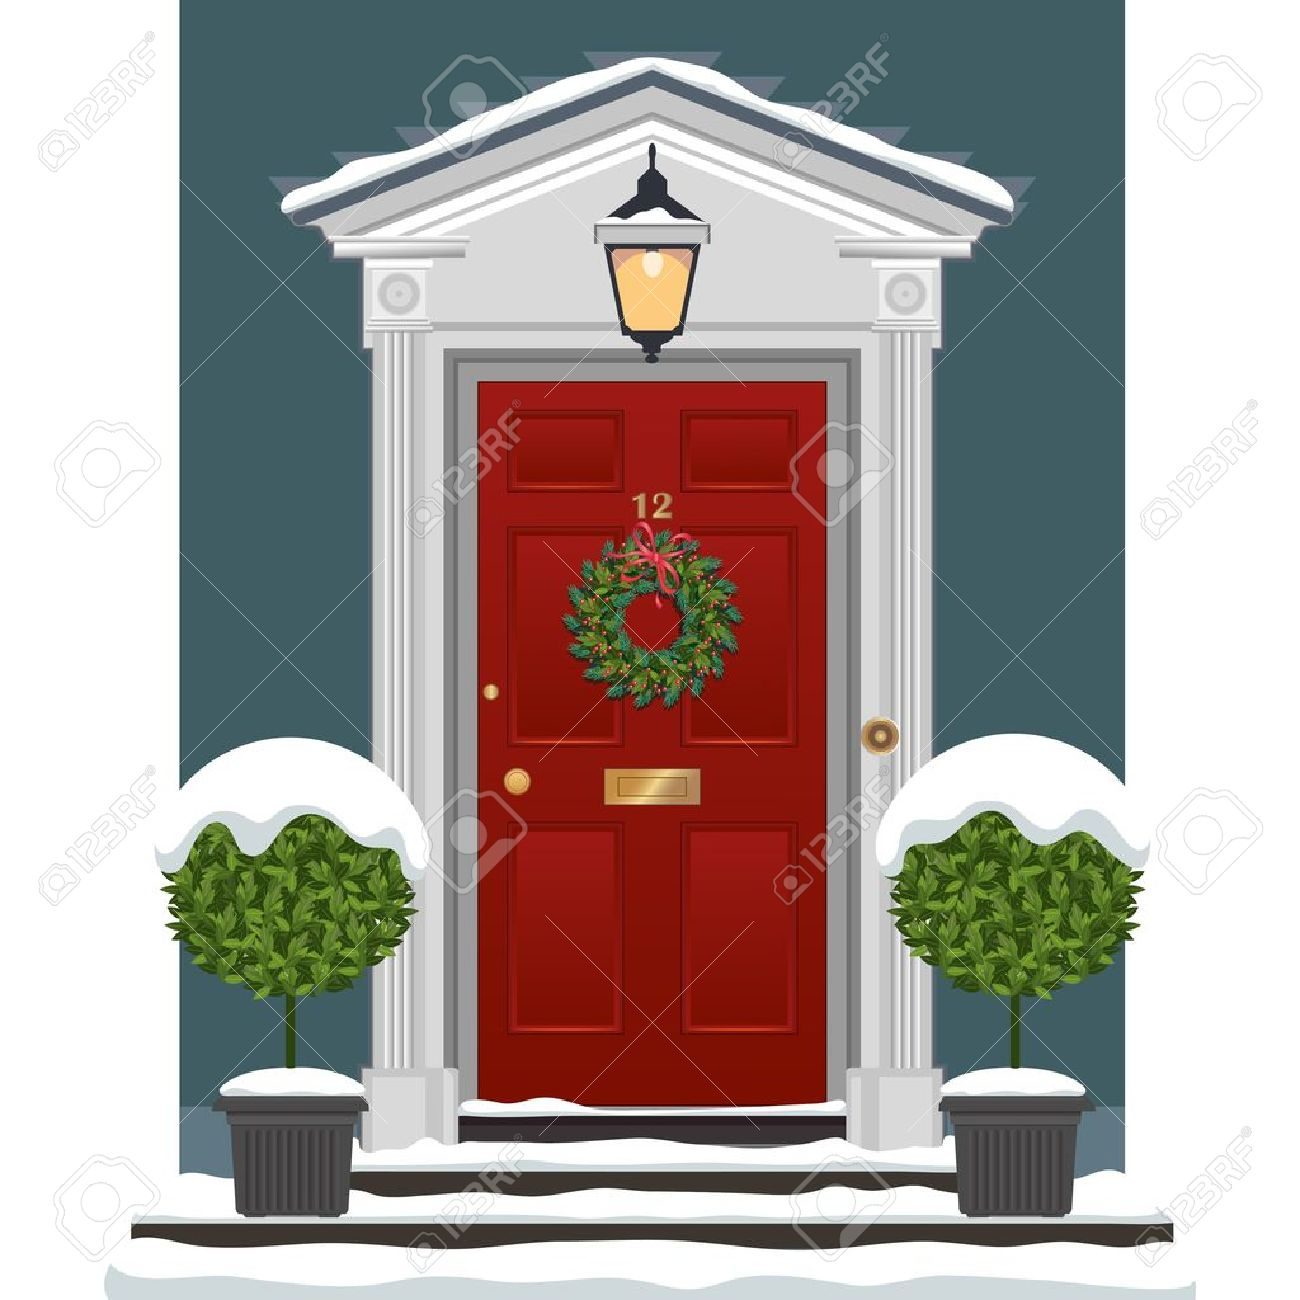 Front door christmas wreaths - Red Painted Front Door With Christmas Wreath In The Snow Stock Vector 20282294